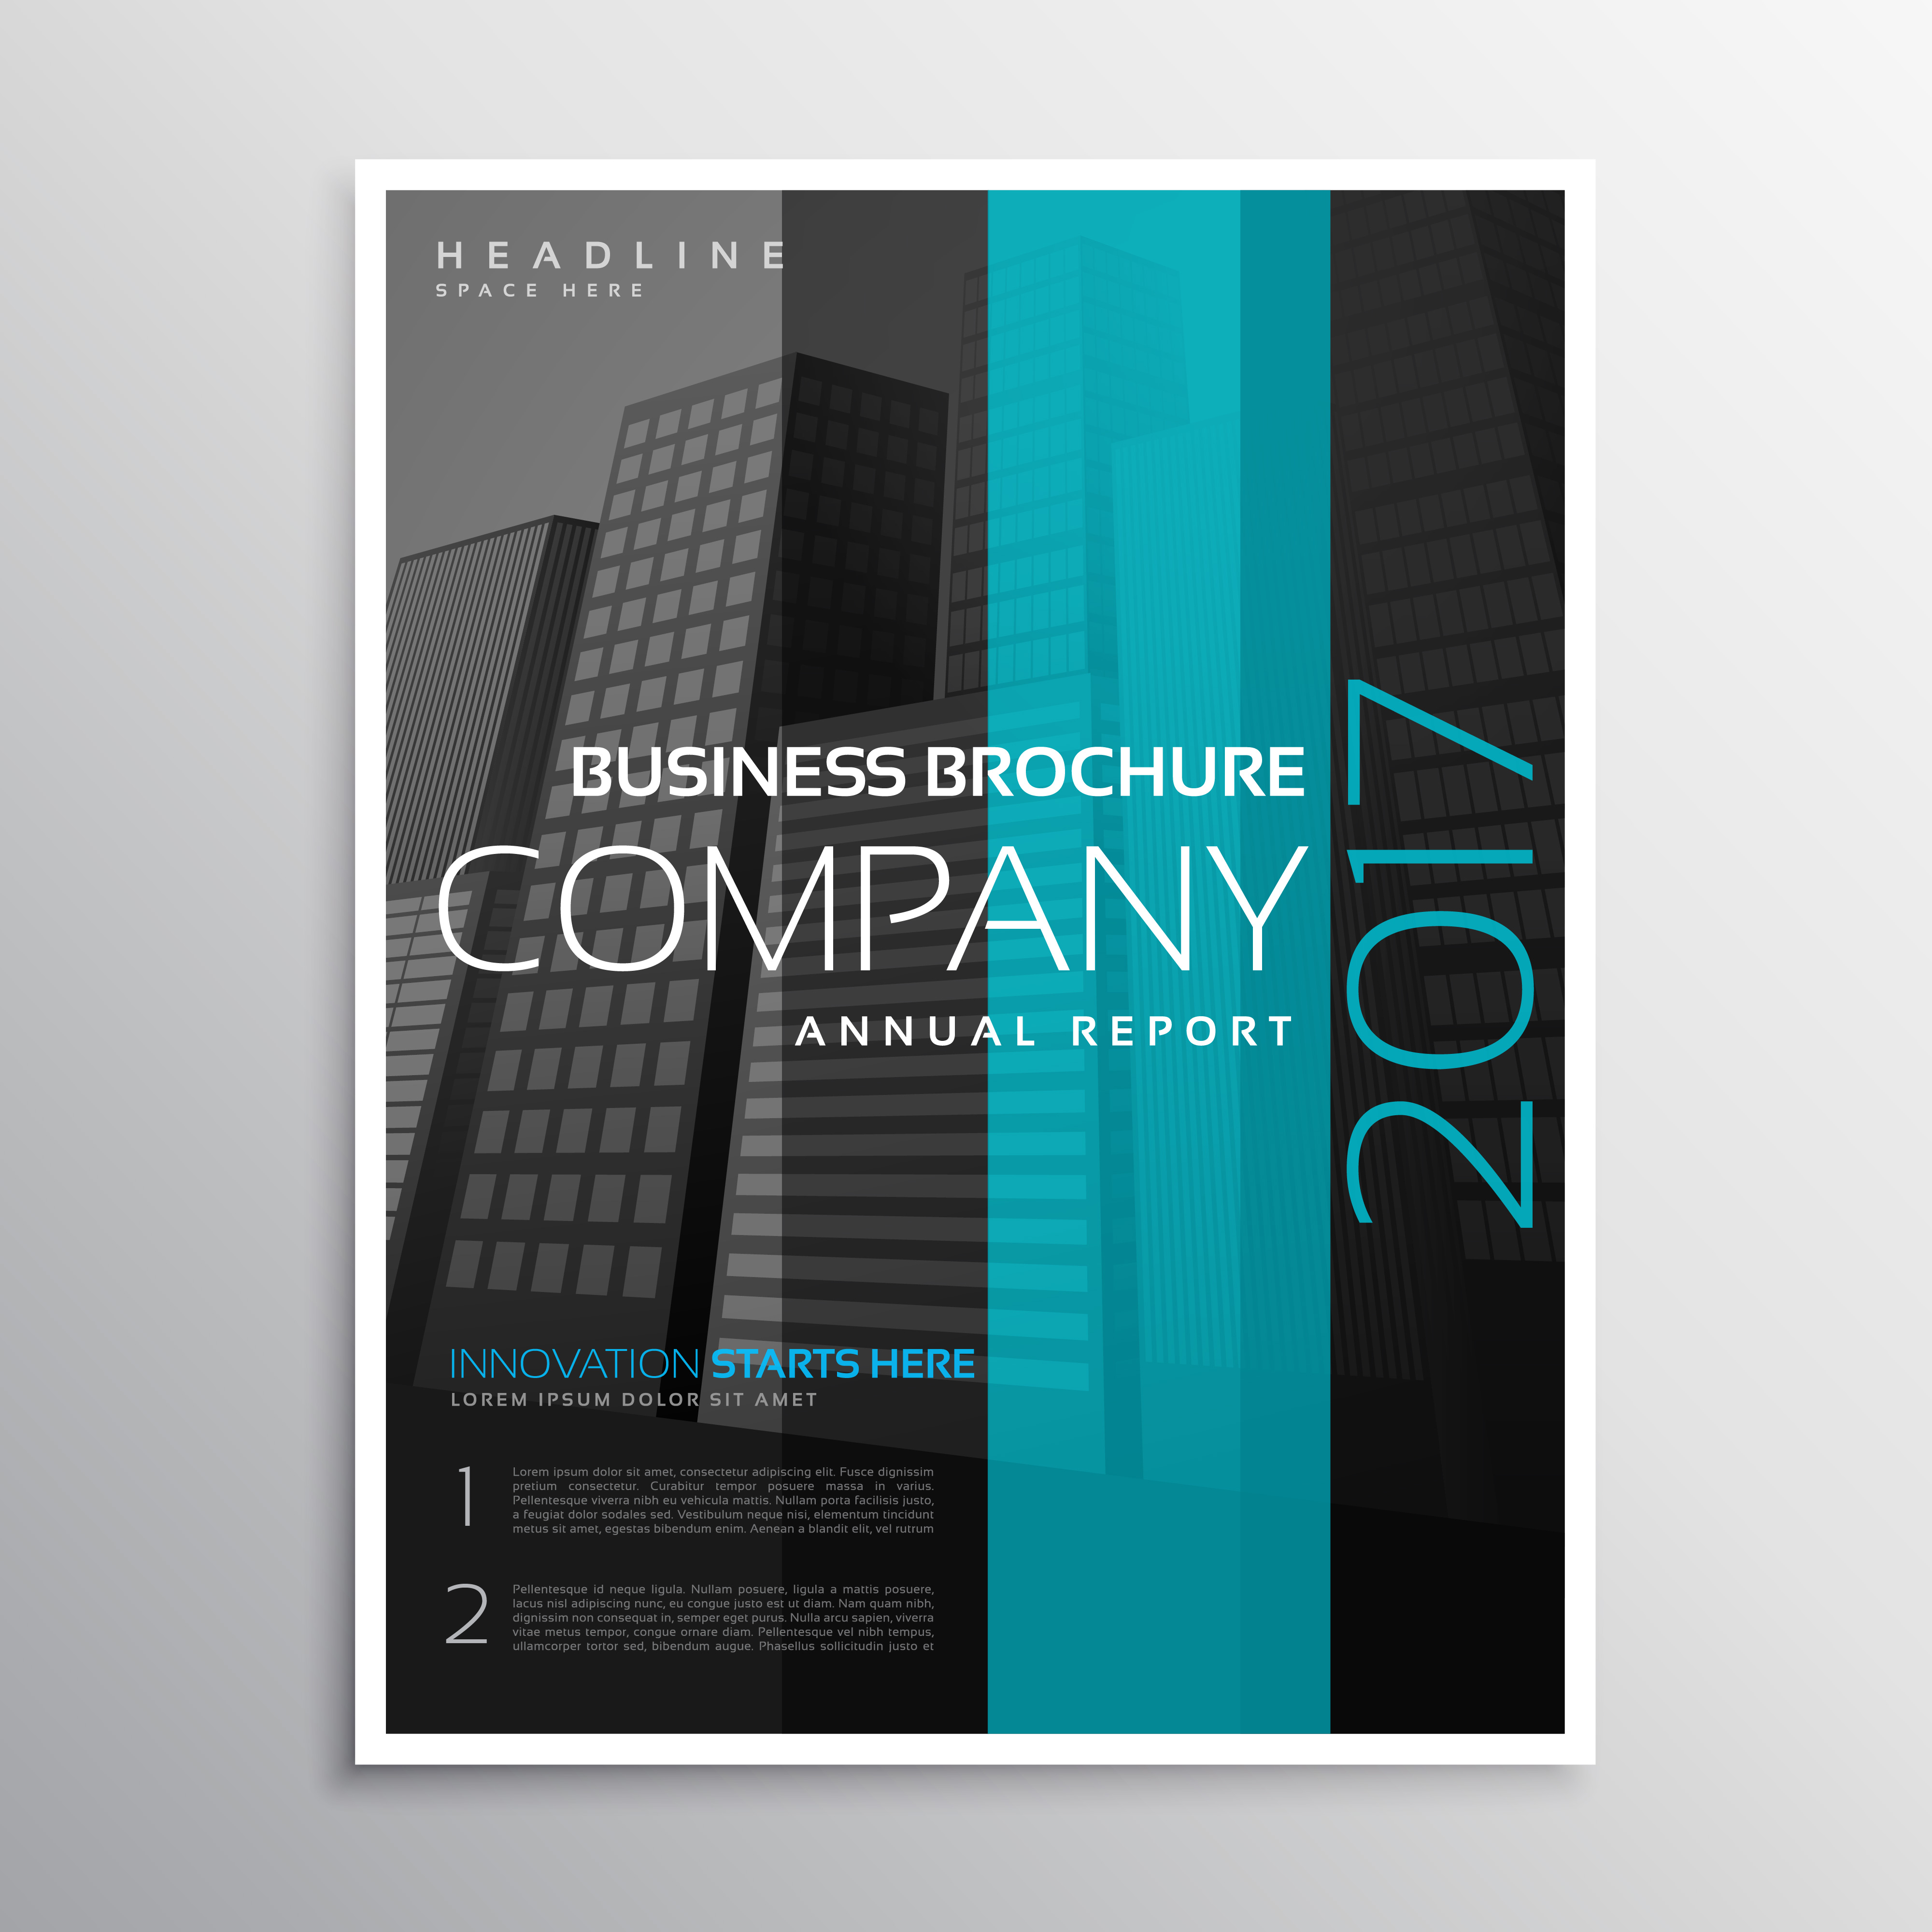 Art Calendar Business Magazine : Company business magazine cover template of annual report